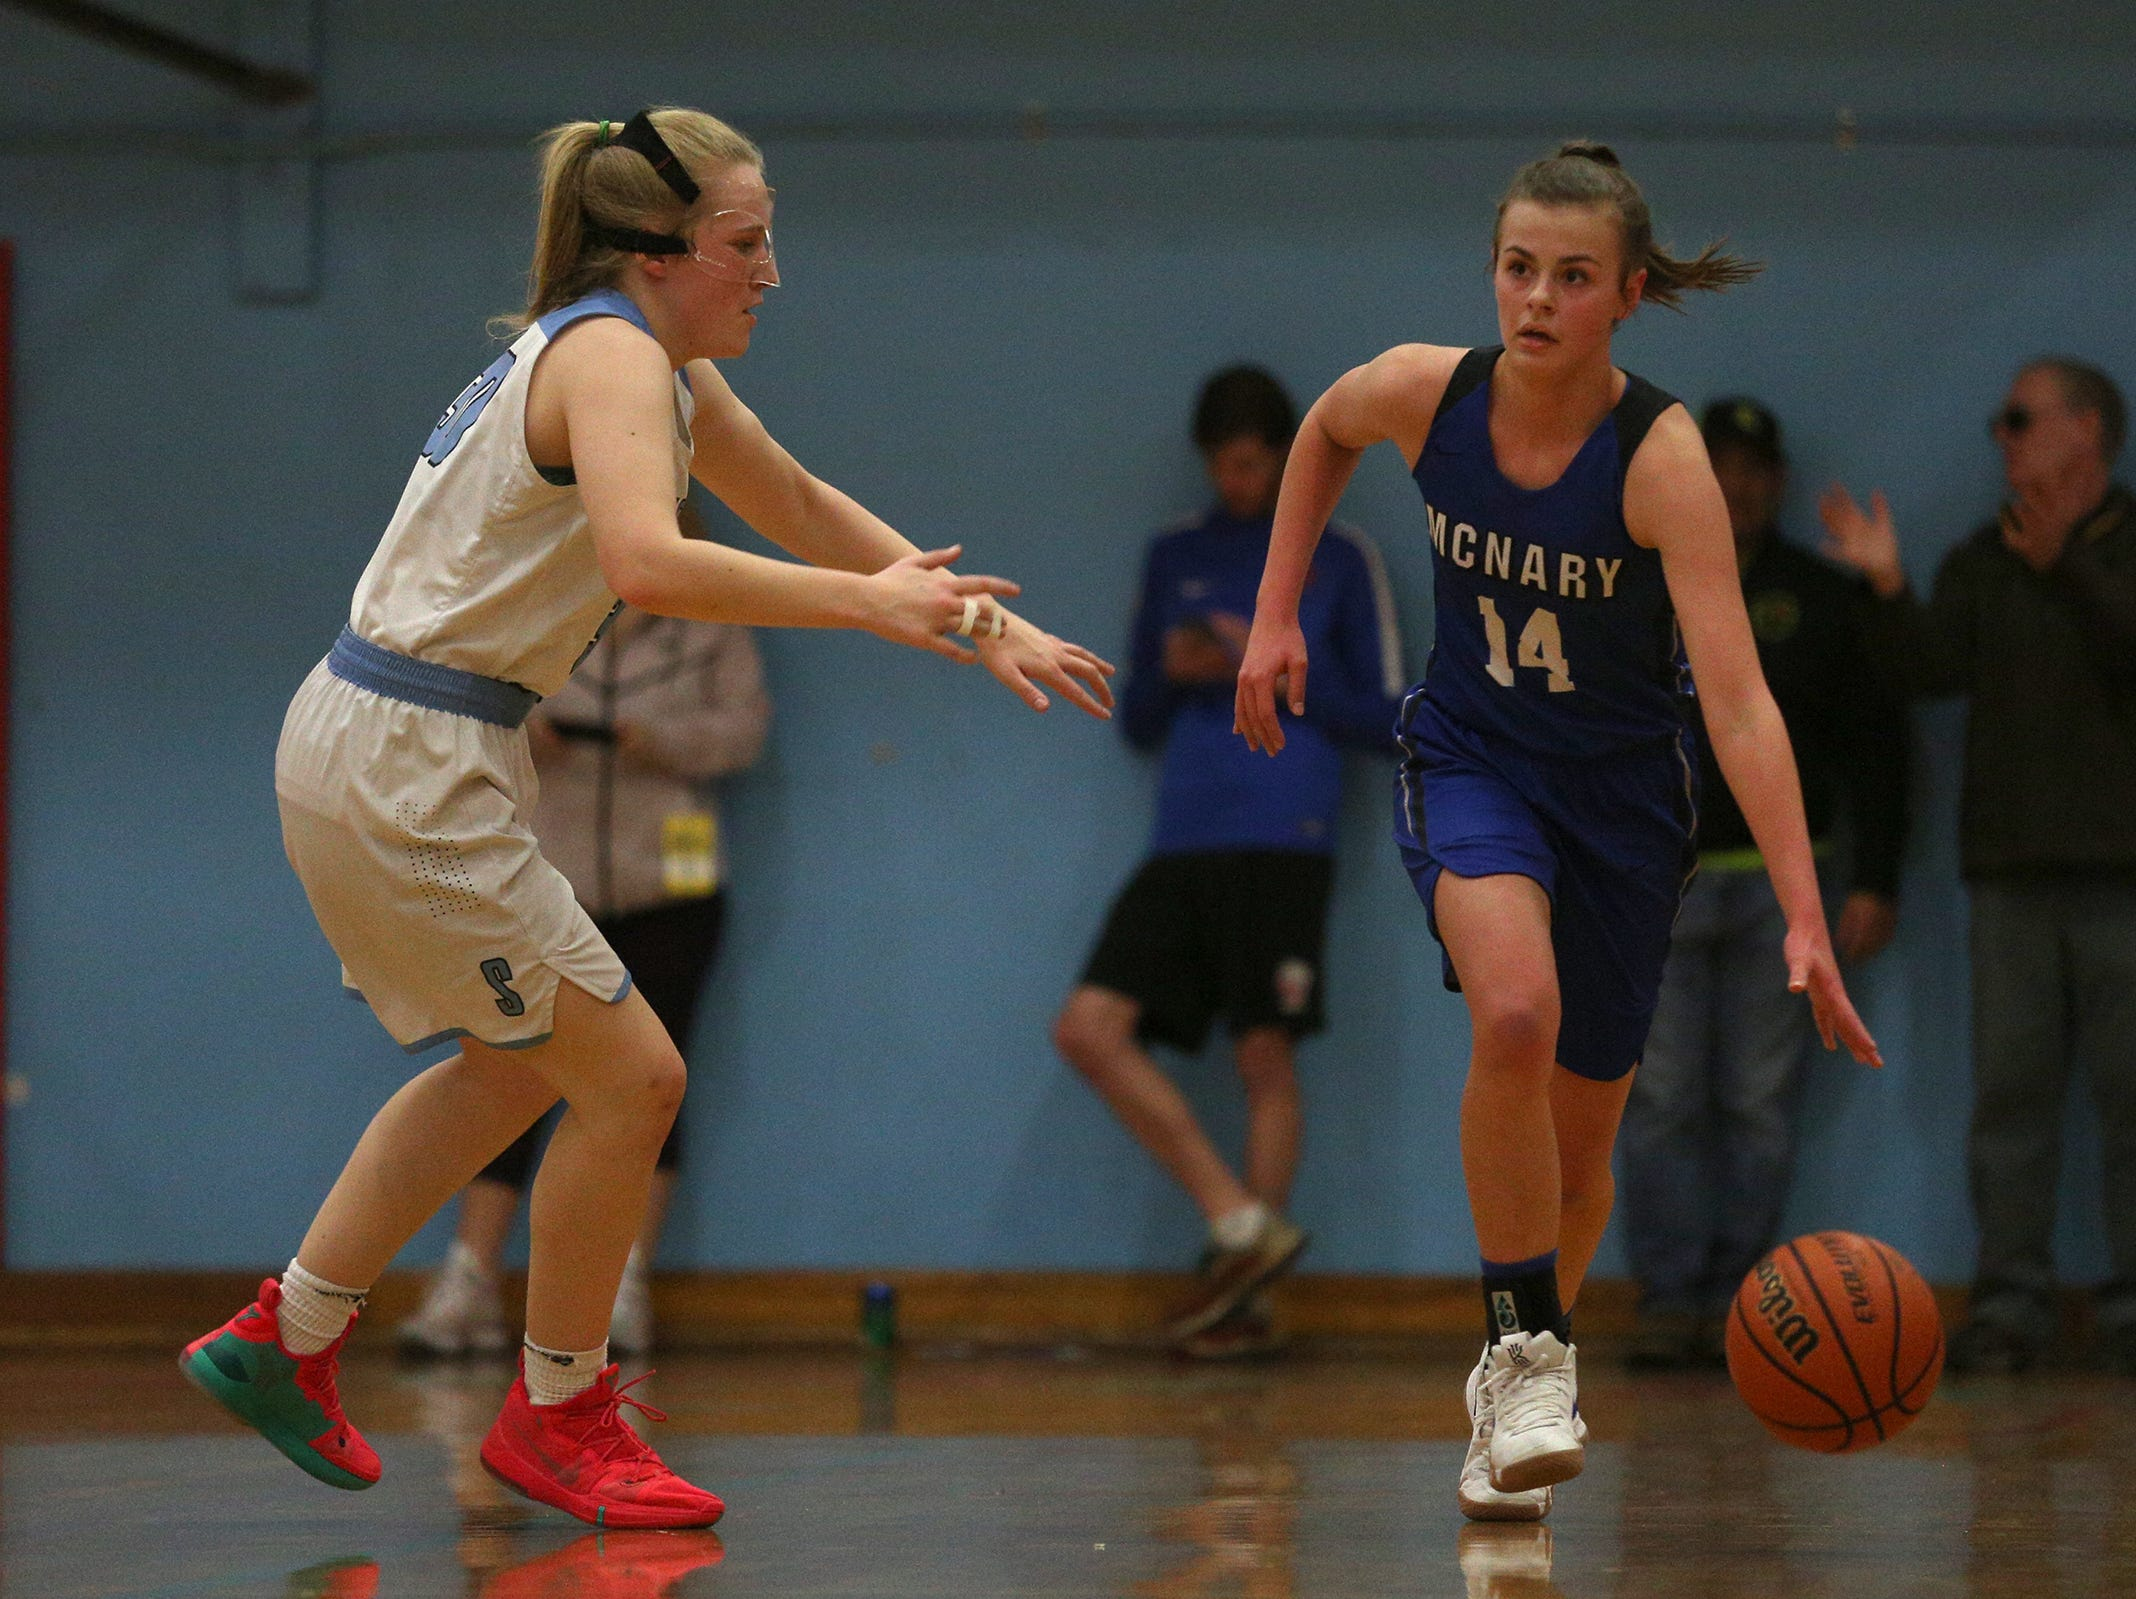 McNary's Leah Doutt (14) protects the ball against South Salem's defense during the South Salem High School girls basketball game against McNary High School in Salem on Thursday, Jan. 31, 2019.